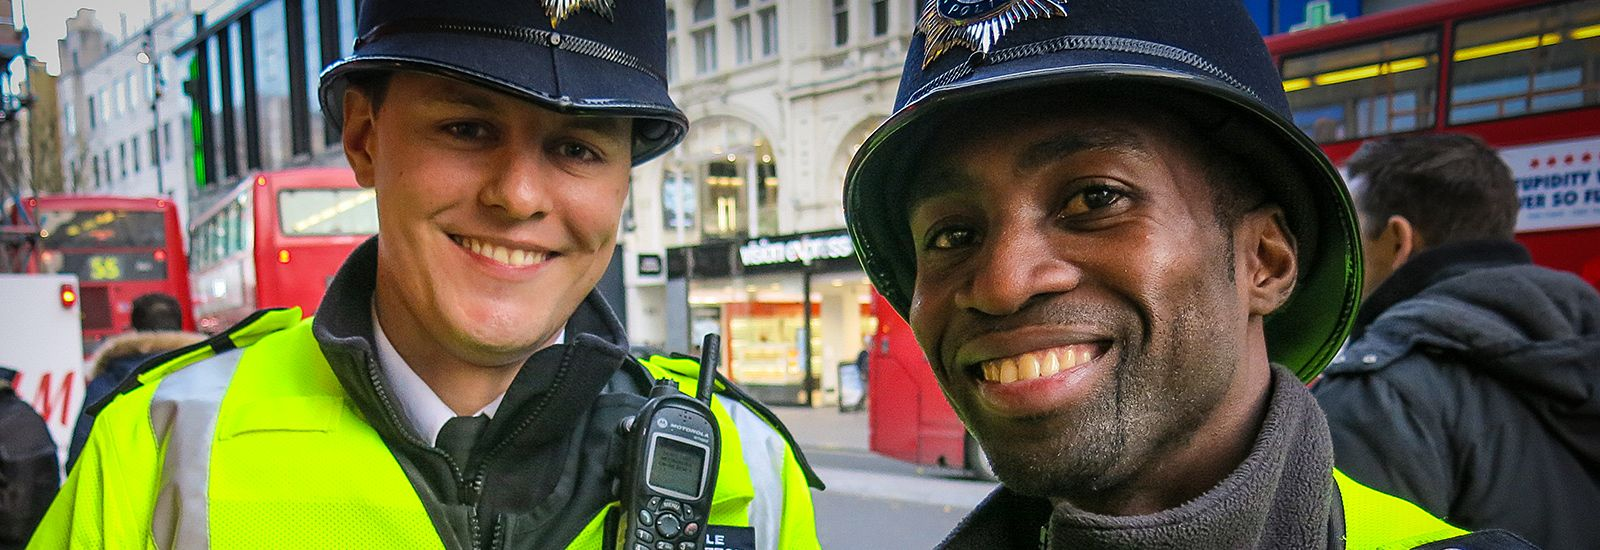 Two policemen